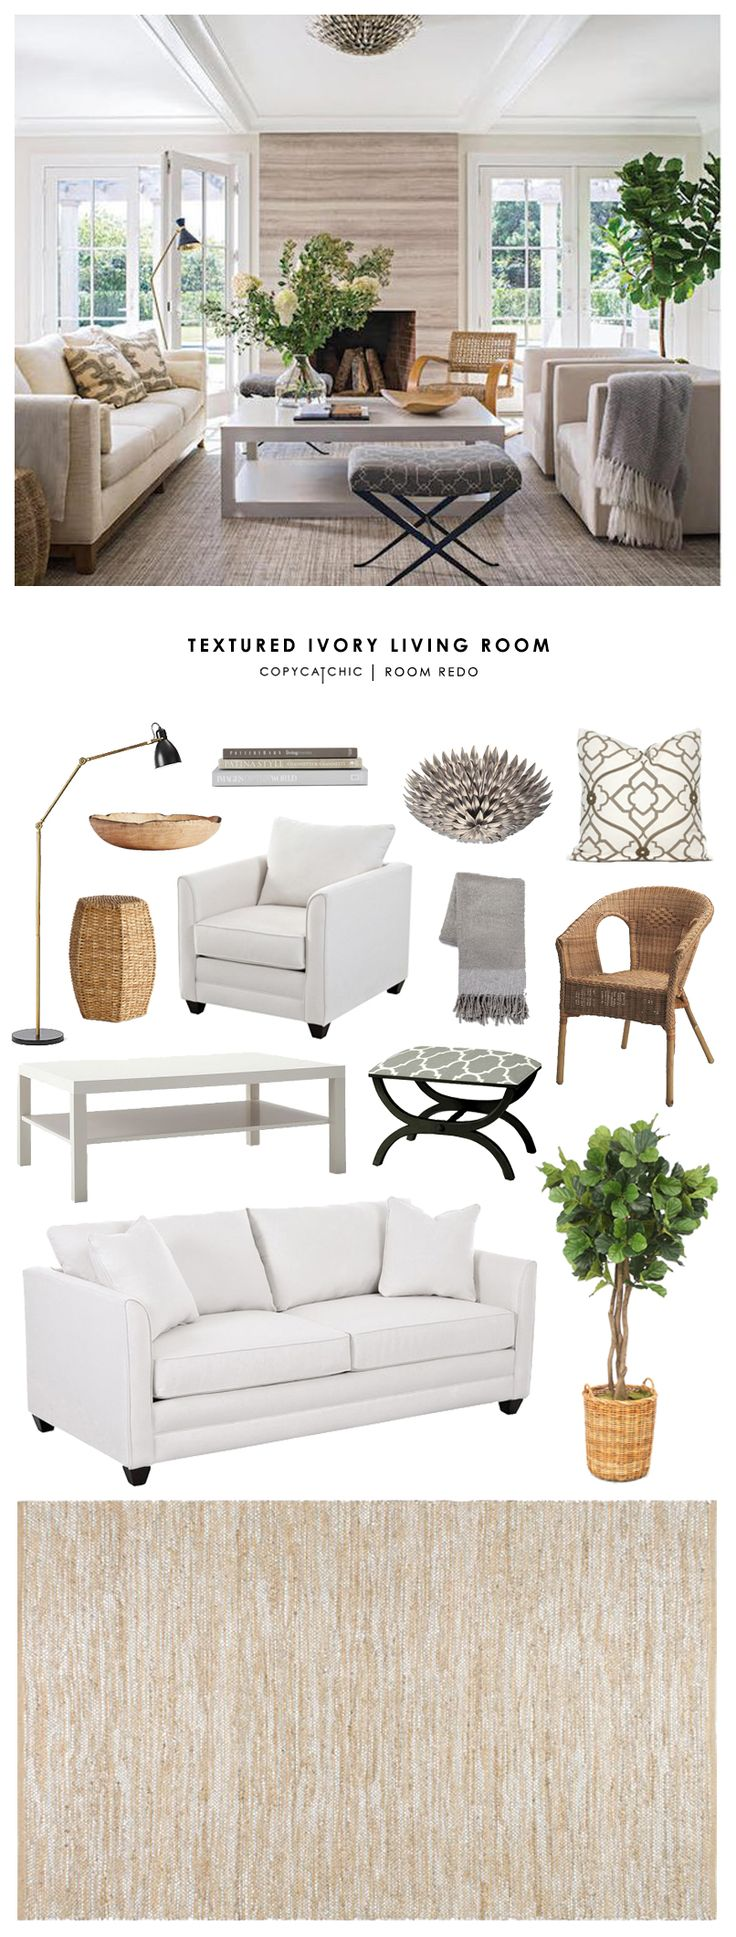 Copy Cat Chic Room Redo | Textured Ivory Living Room